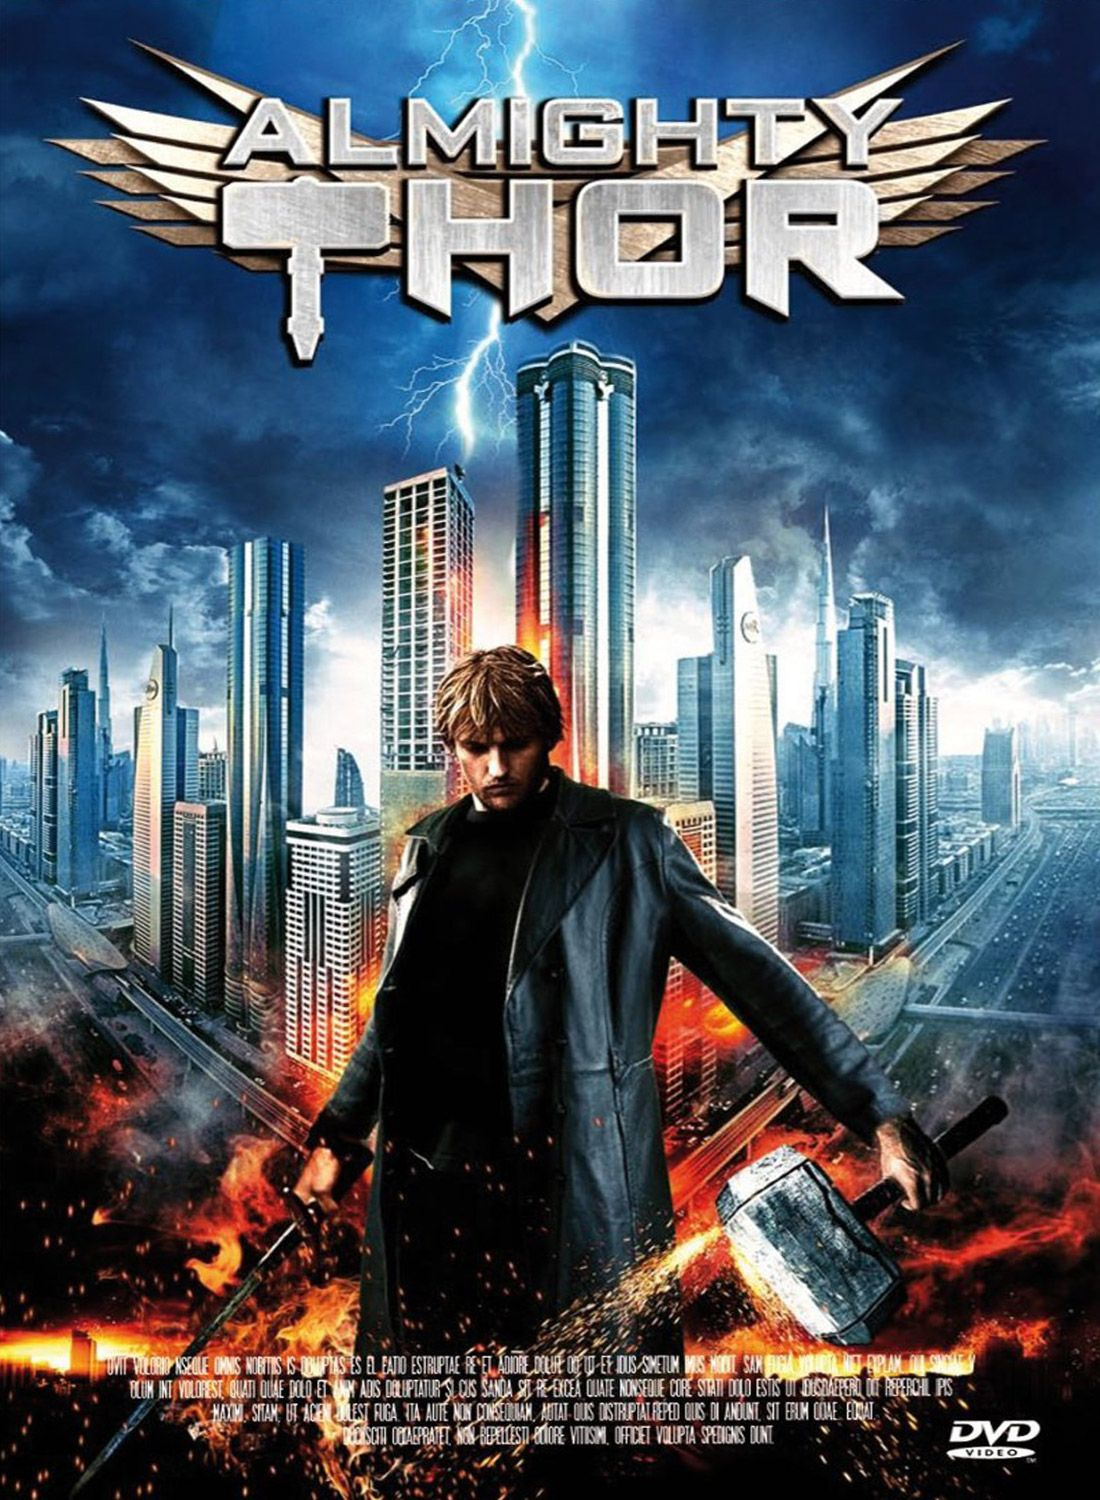 Moviecovers 207813 207813 Almighty Thor Thor Ray Film Movie Posters